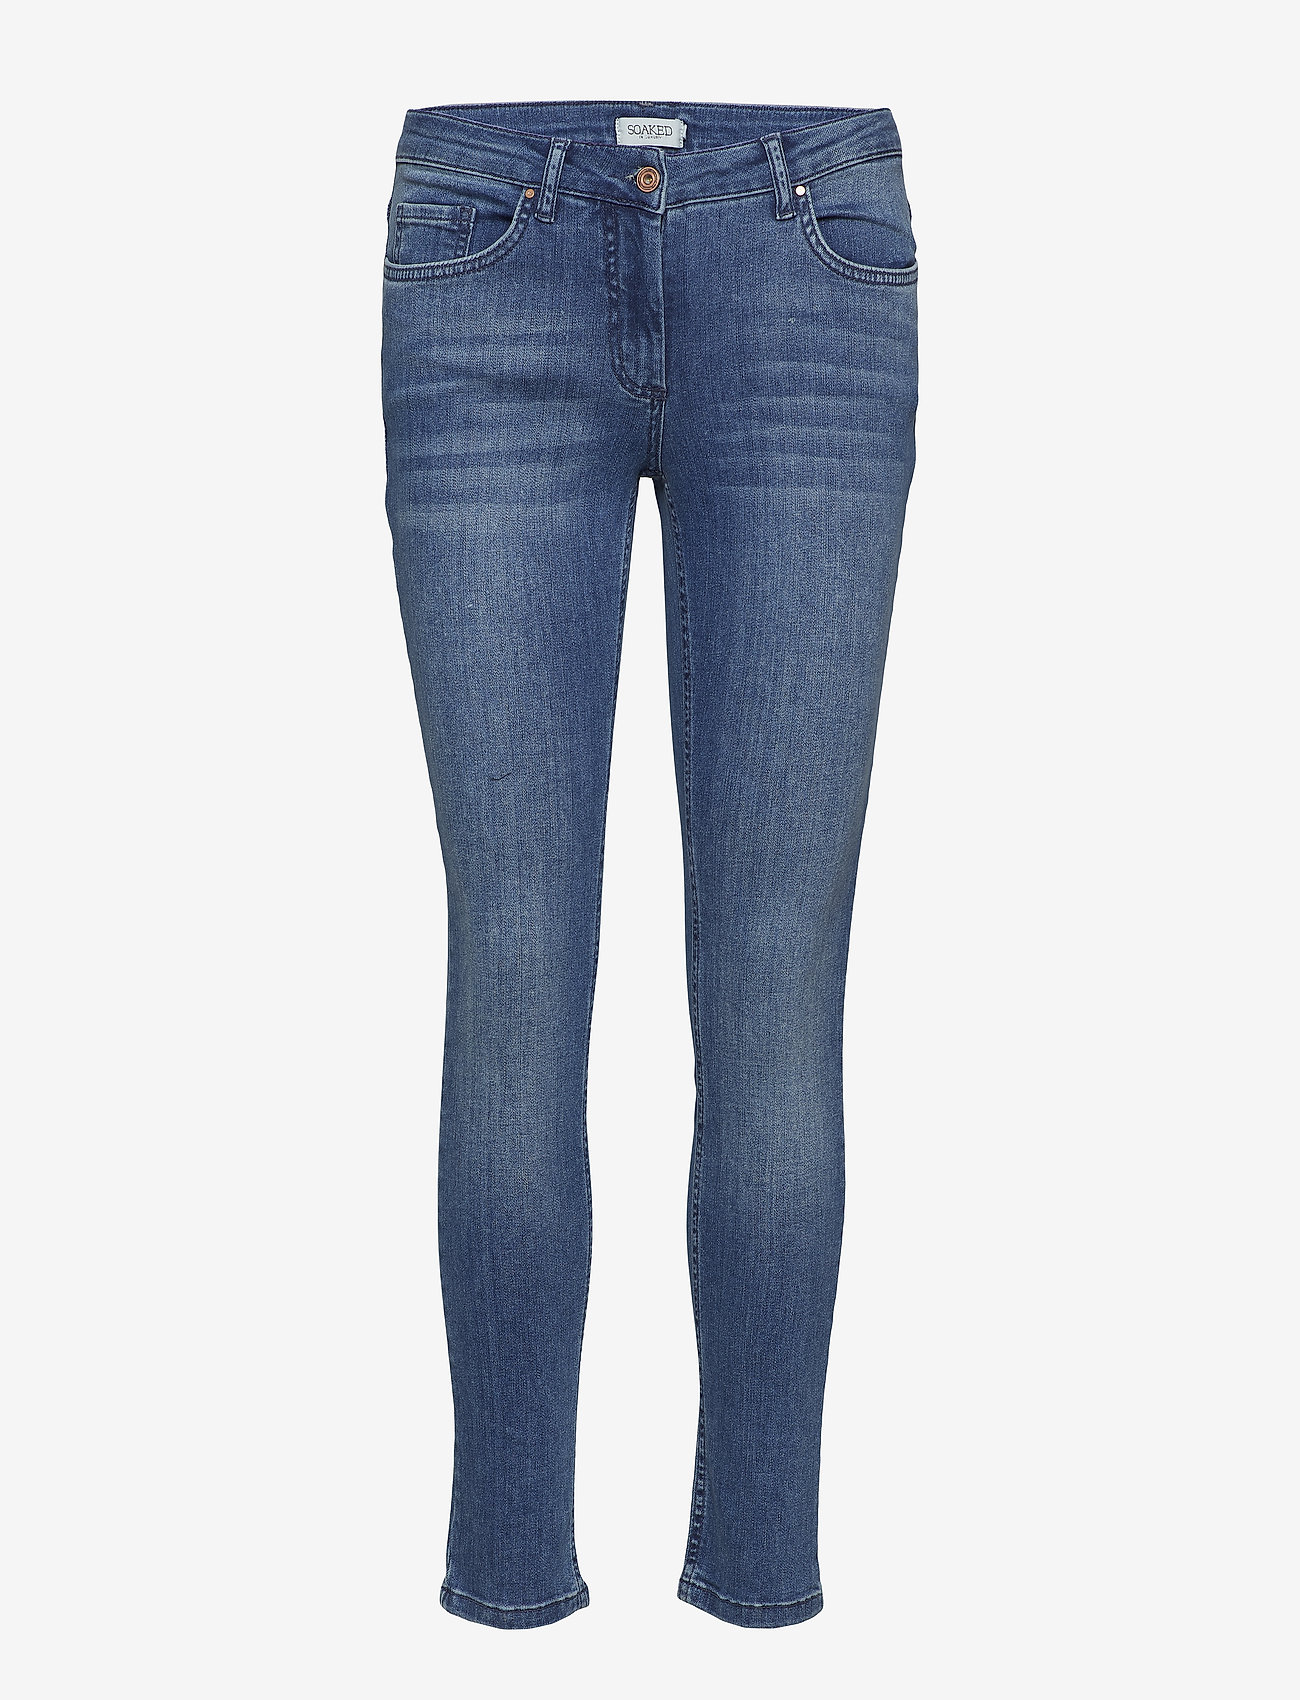 Soaked in Luxury - Callas Jeans - wąskie dżinsy - medium blue denim - 1